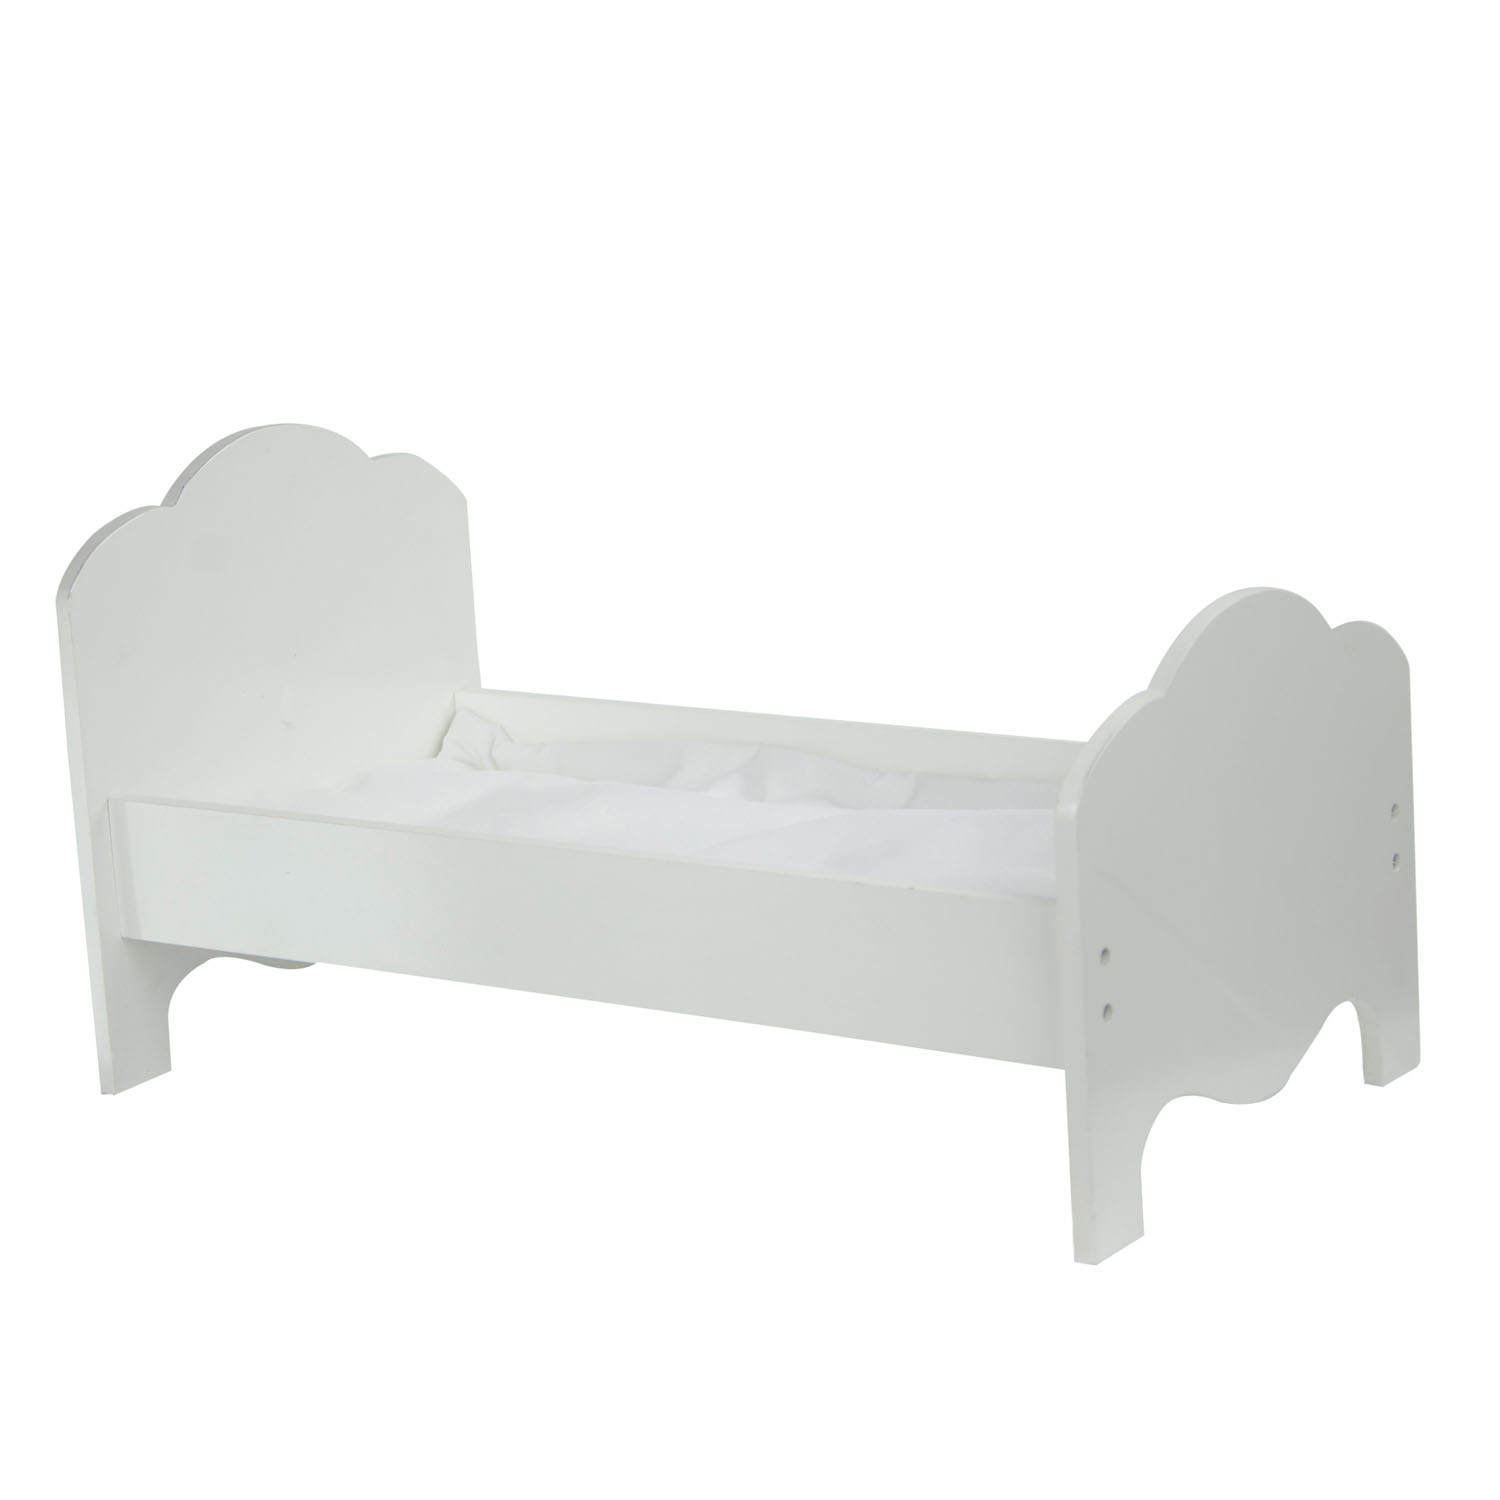 "Olivia's Little World - Little Princess 18"" Doll Furniture - Classic Single Bed"